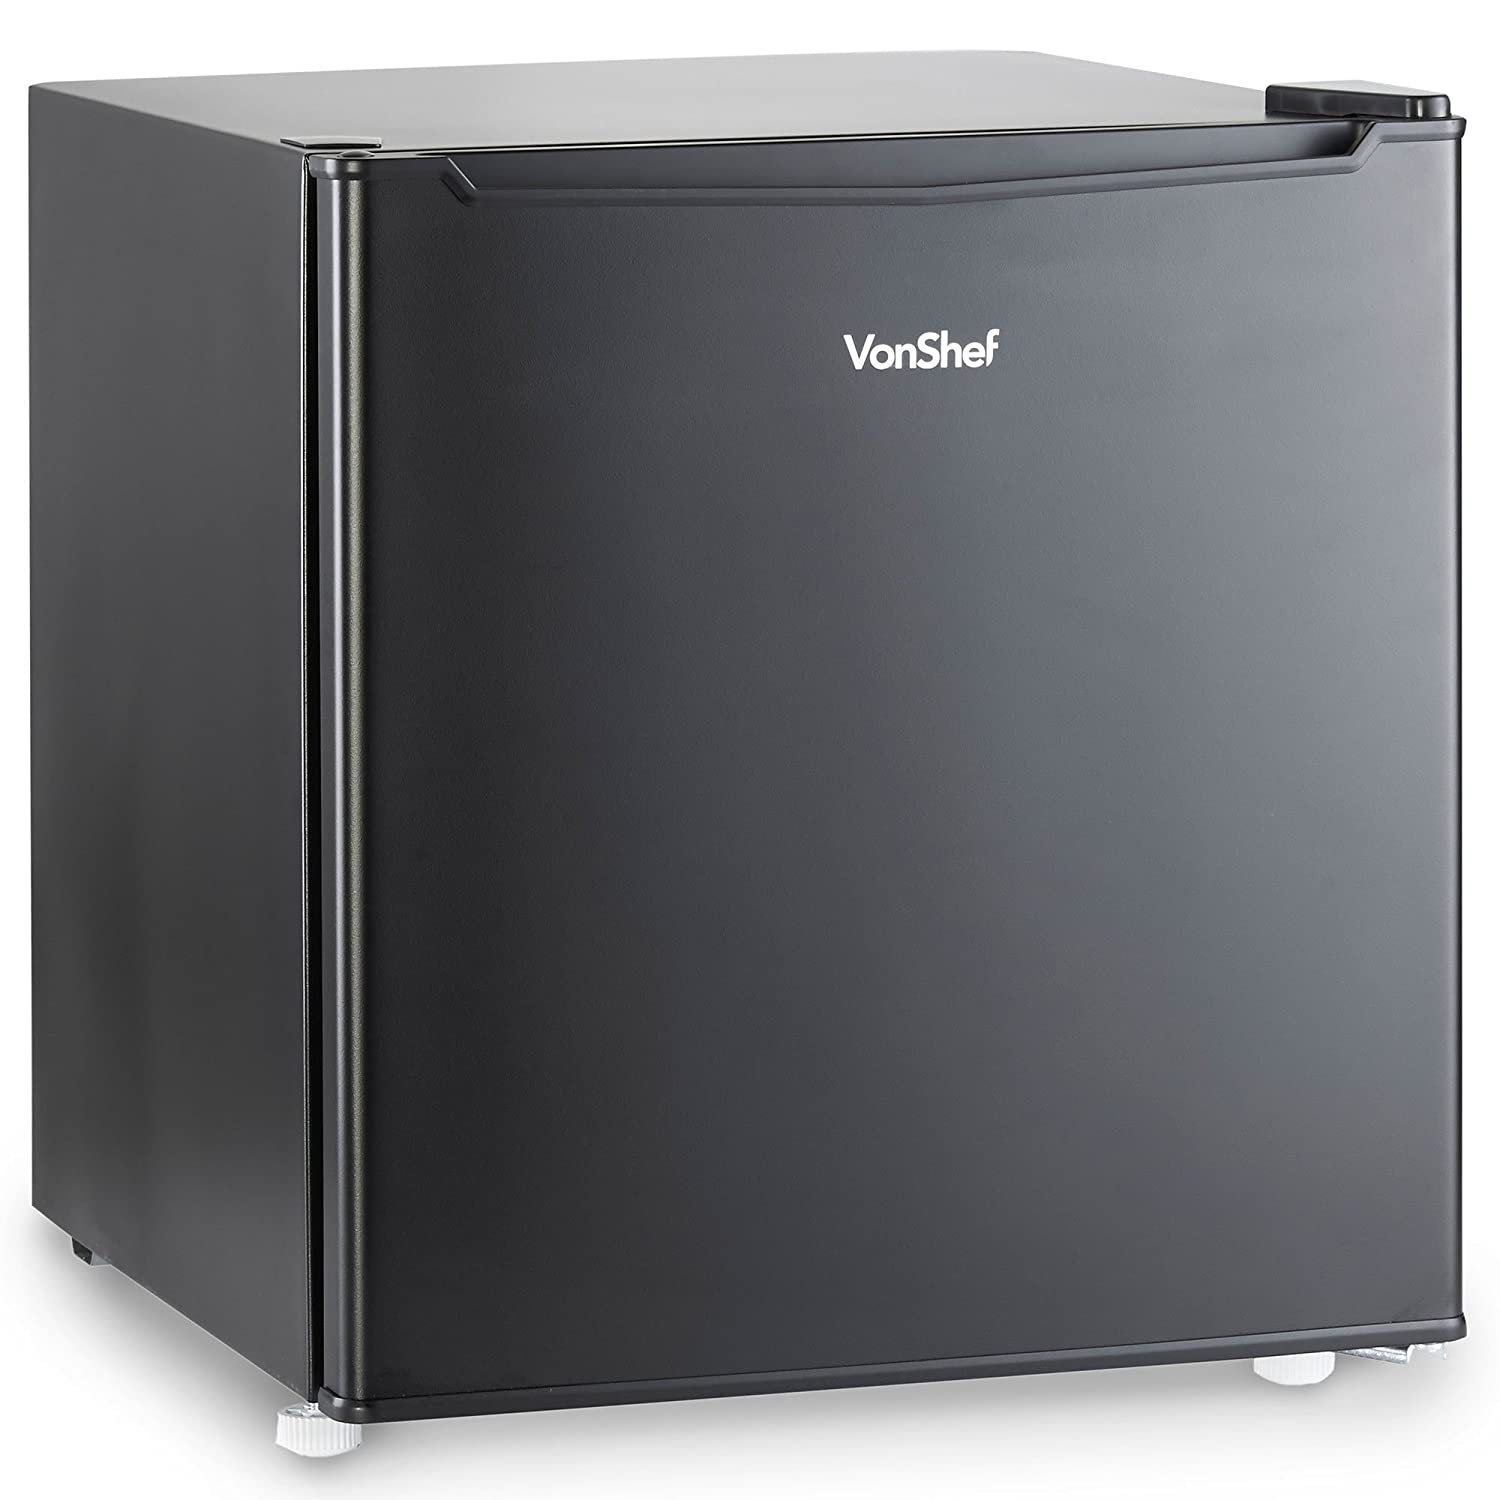 VonShef 75L Fridge with Ice Compartment – 48cm Wide Under Counter Refrigerator with Temperature Control – Black – A+ [Energy Class A+]